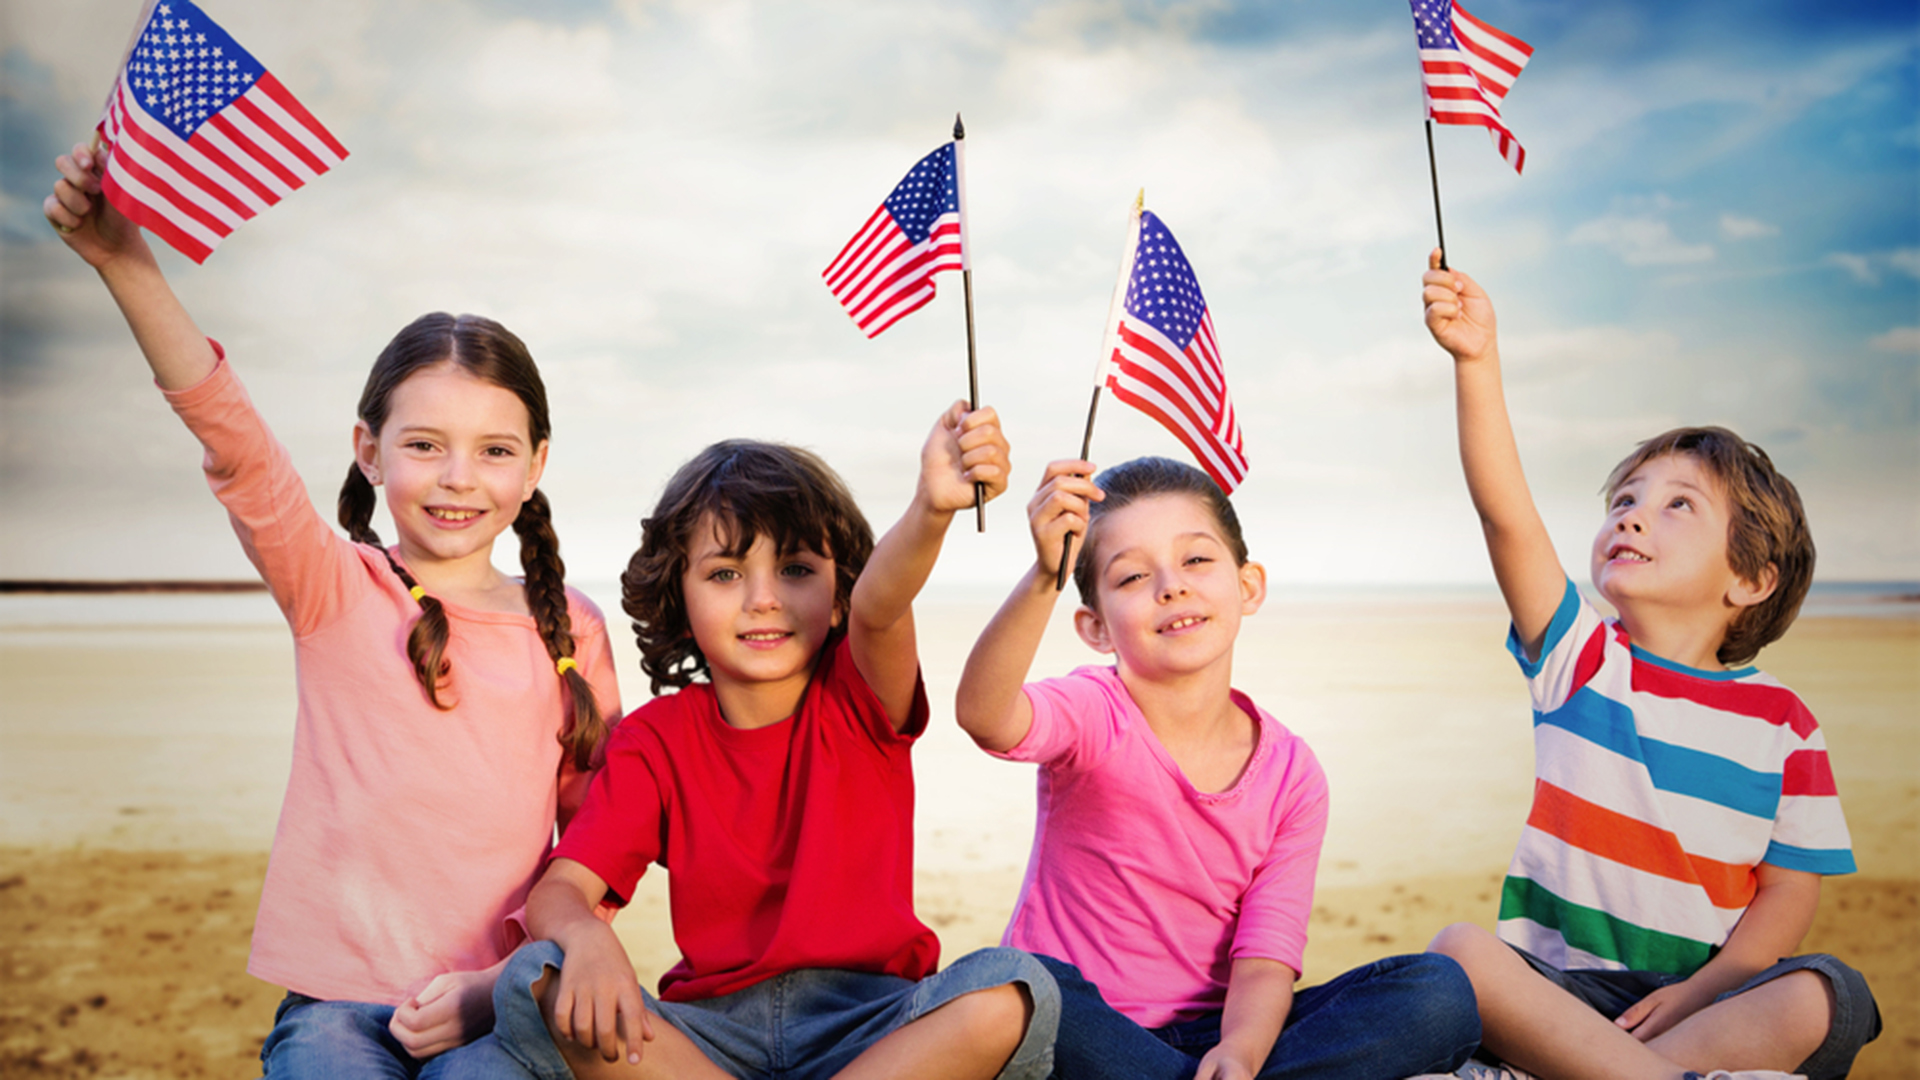 Forget fireworks: Teach kids the meaning of July 4 - TODAY.com